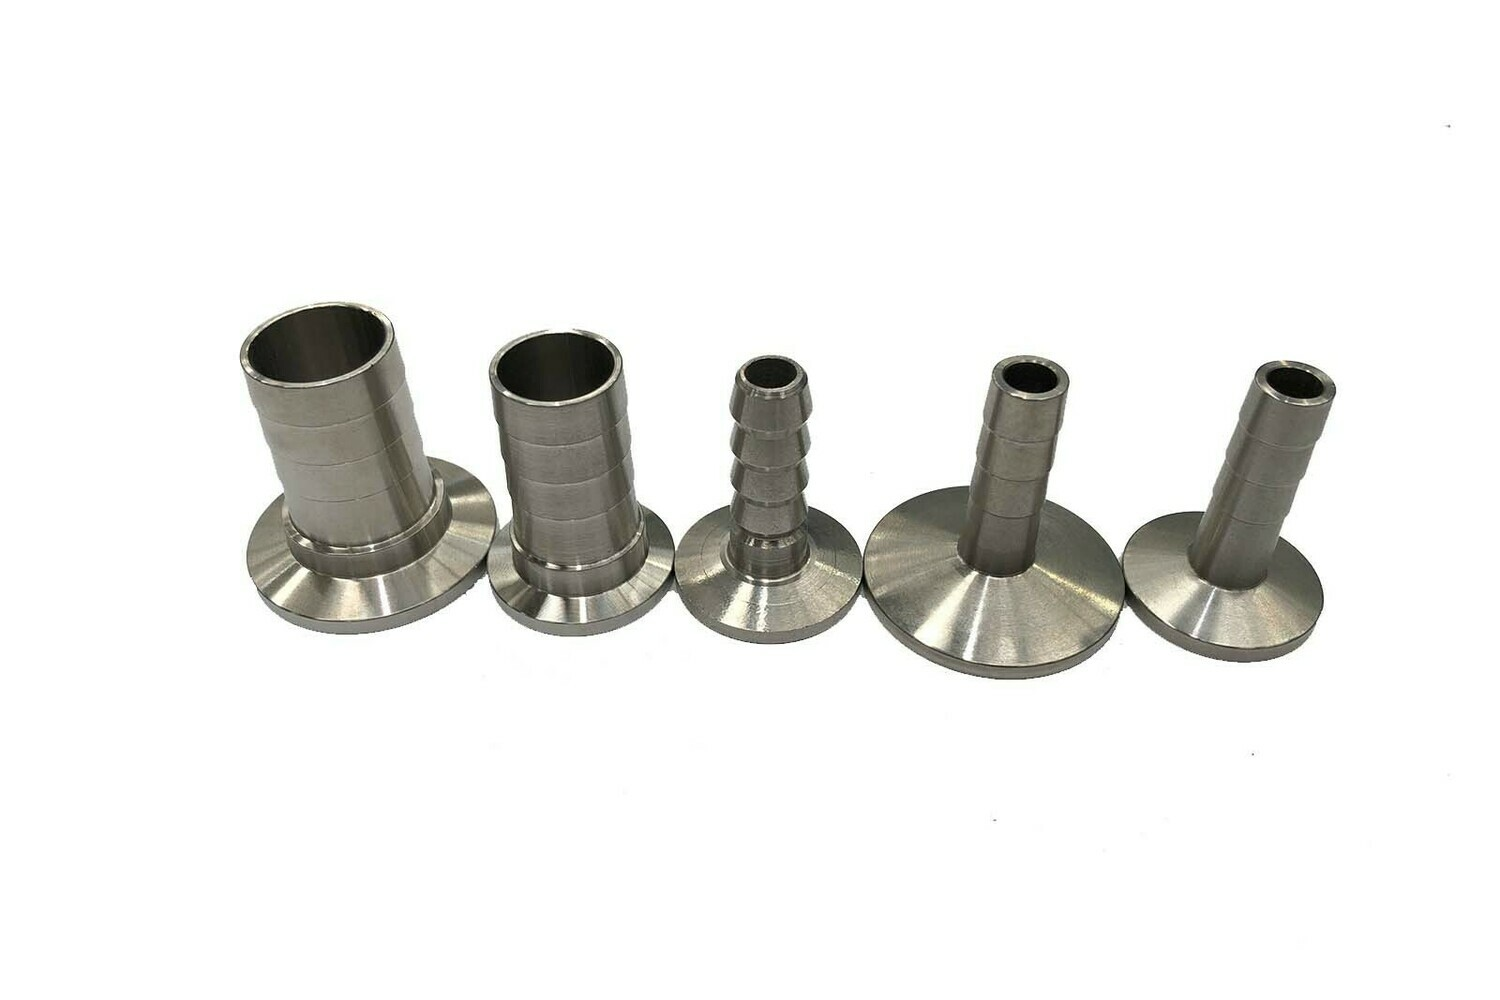 KF16 Hose Barb Stainless Steel (Various Sizes)